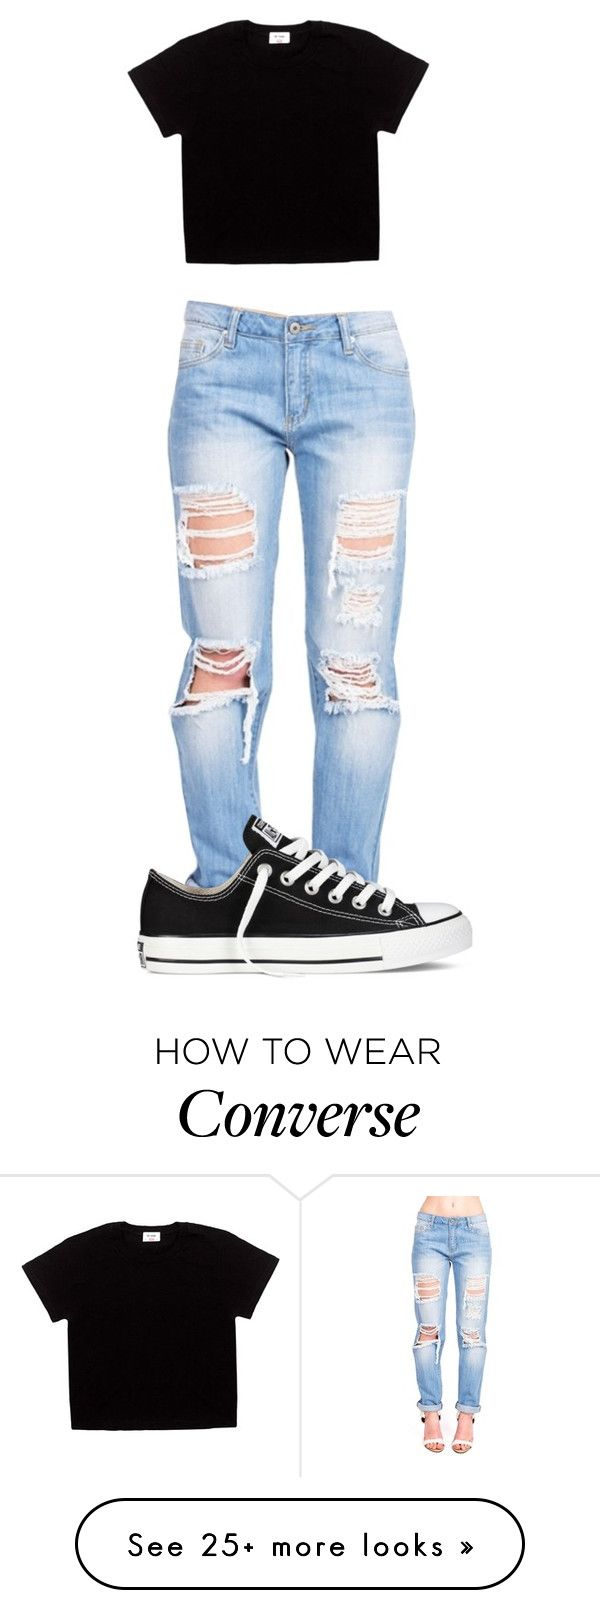 """Untitled #435"" by shiane816 on Polyvore featuring Converse"